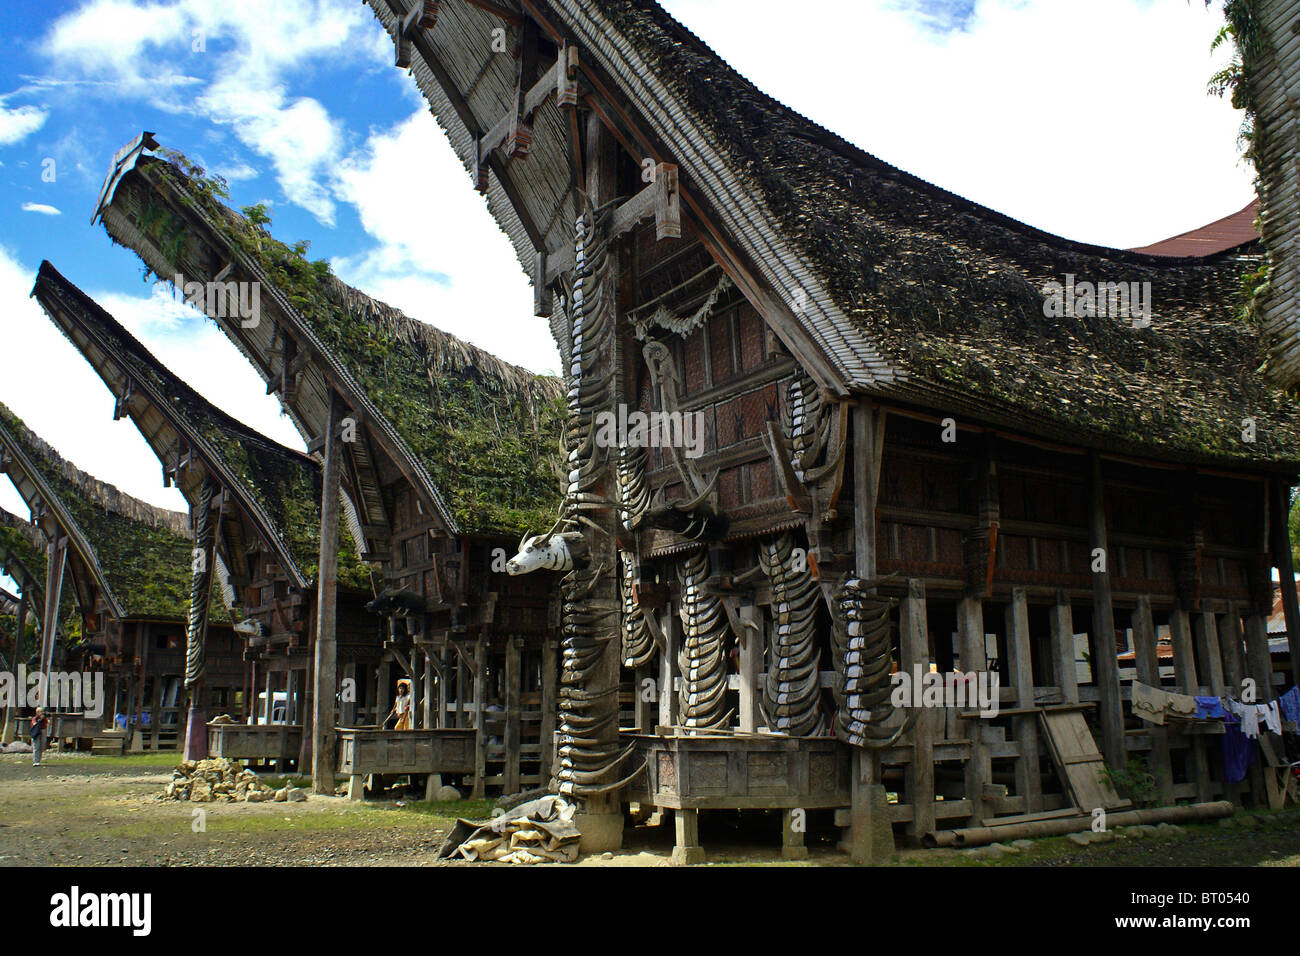 Traditional Torajan houses, Kete Kesu, Tana Toraja, South Sulawesi, Indonesia - Stock Image